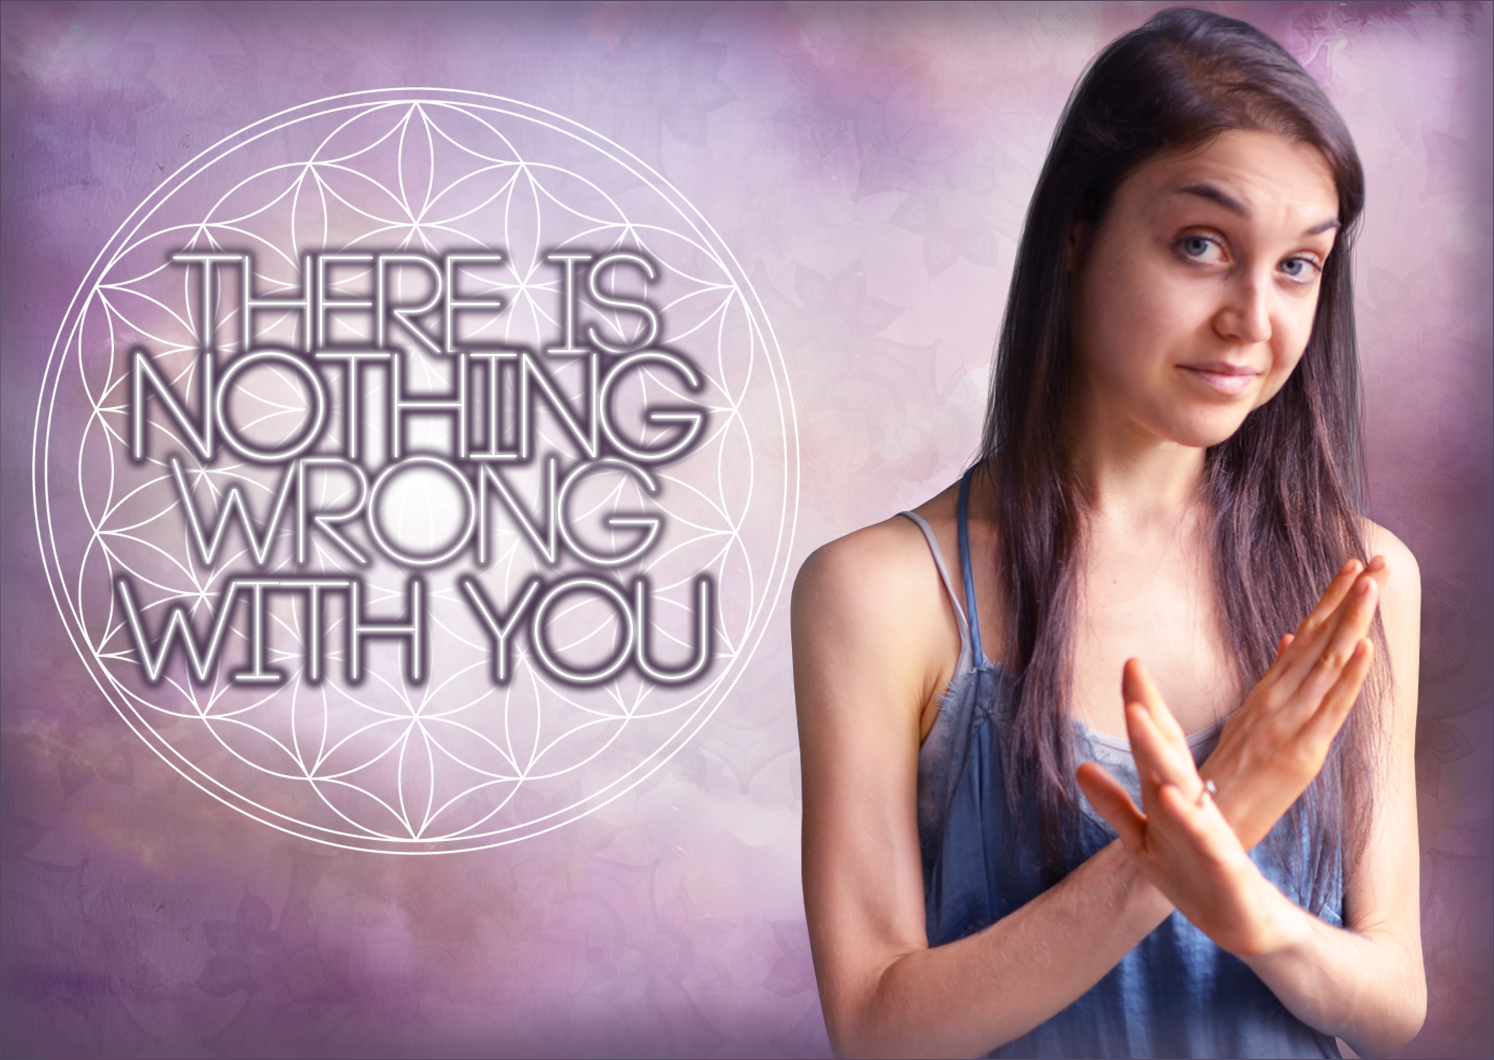 There Is Nothing Wrong With You: